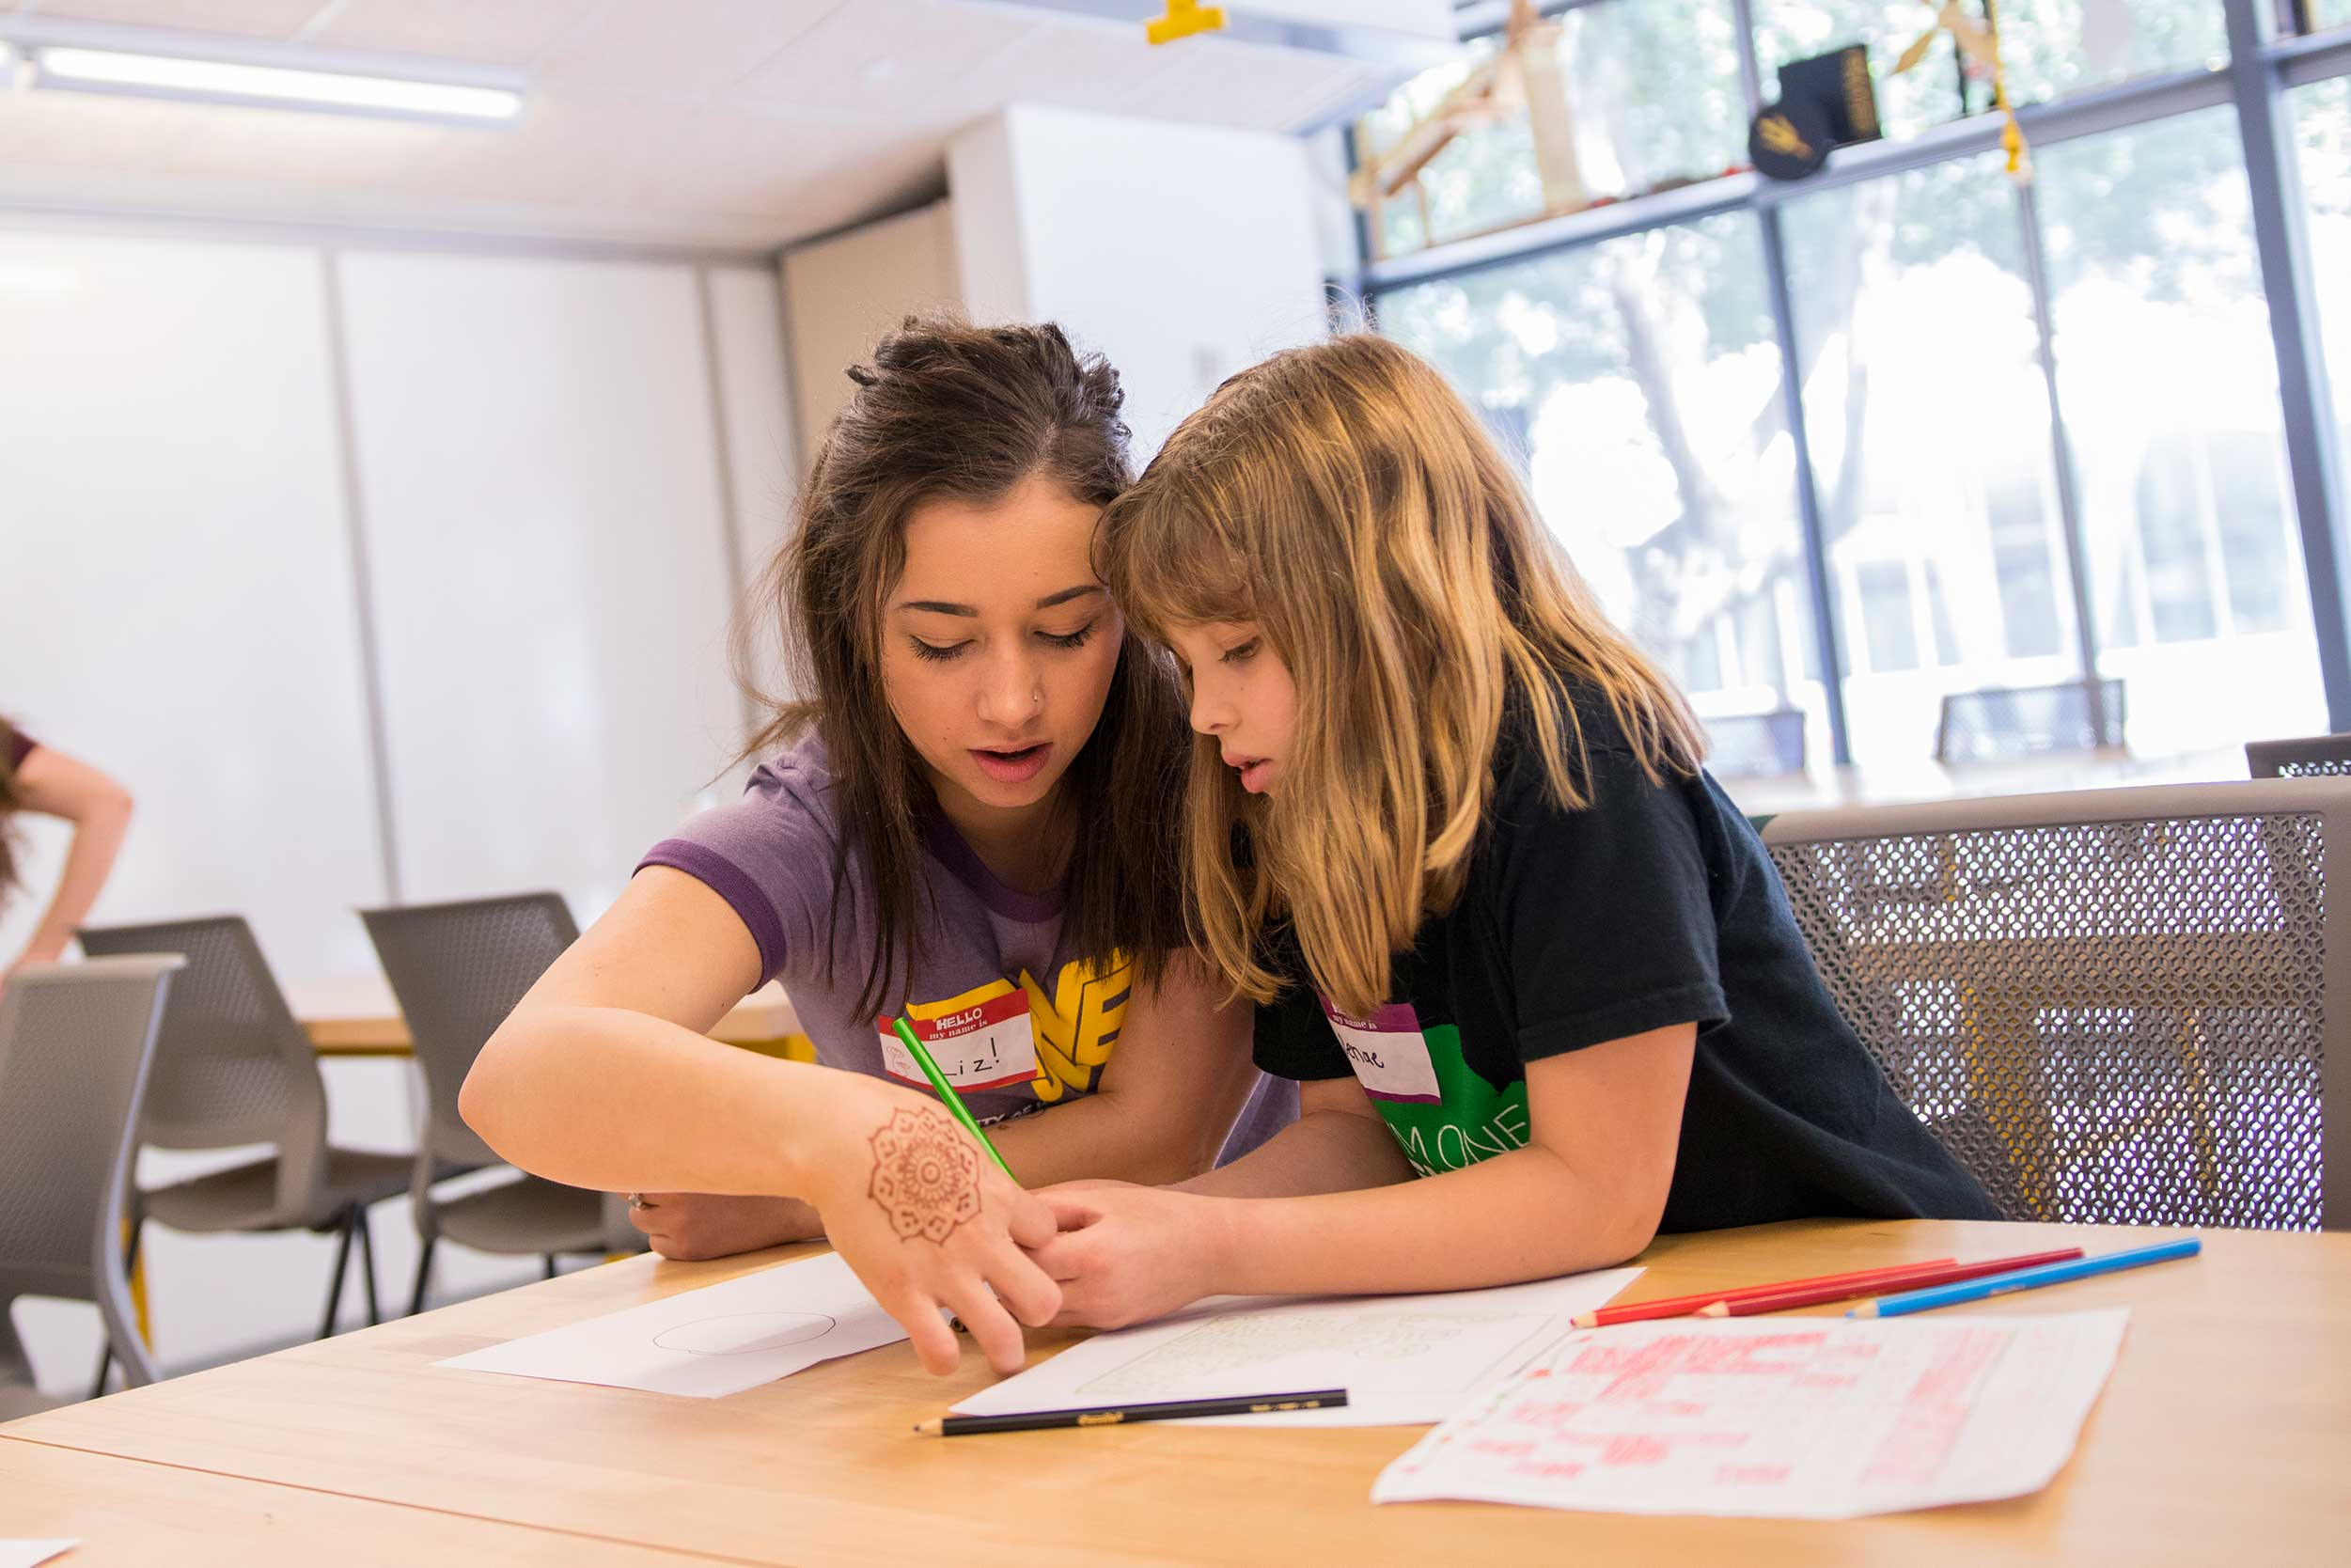 Elizabeth Jones helps an elementary-aged girl with an engineering project